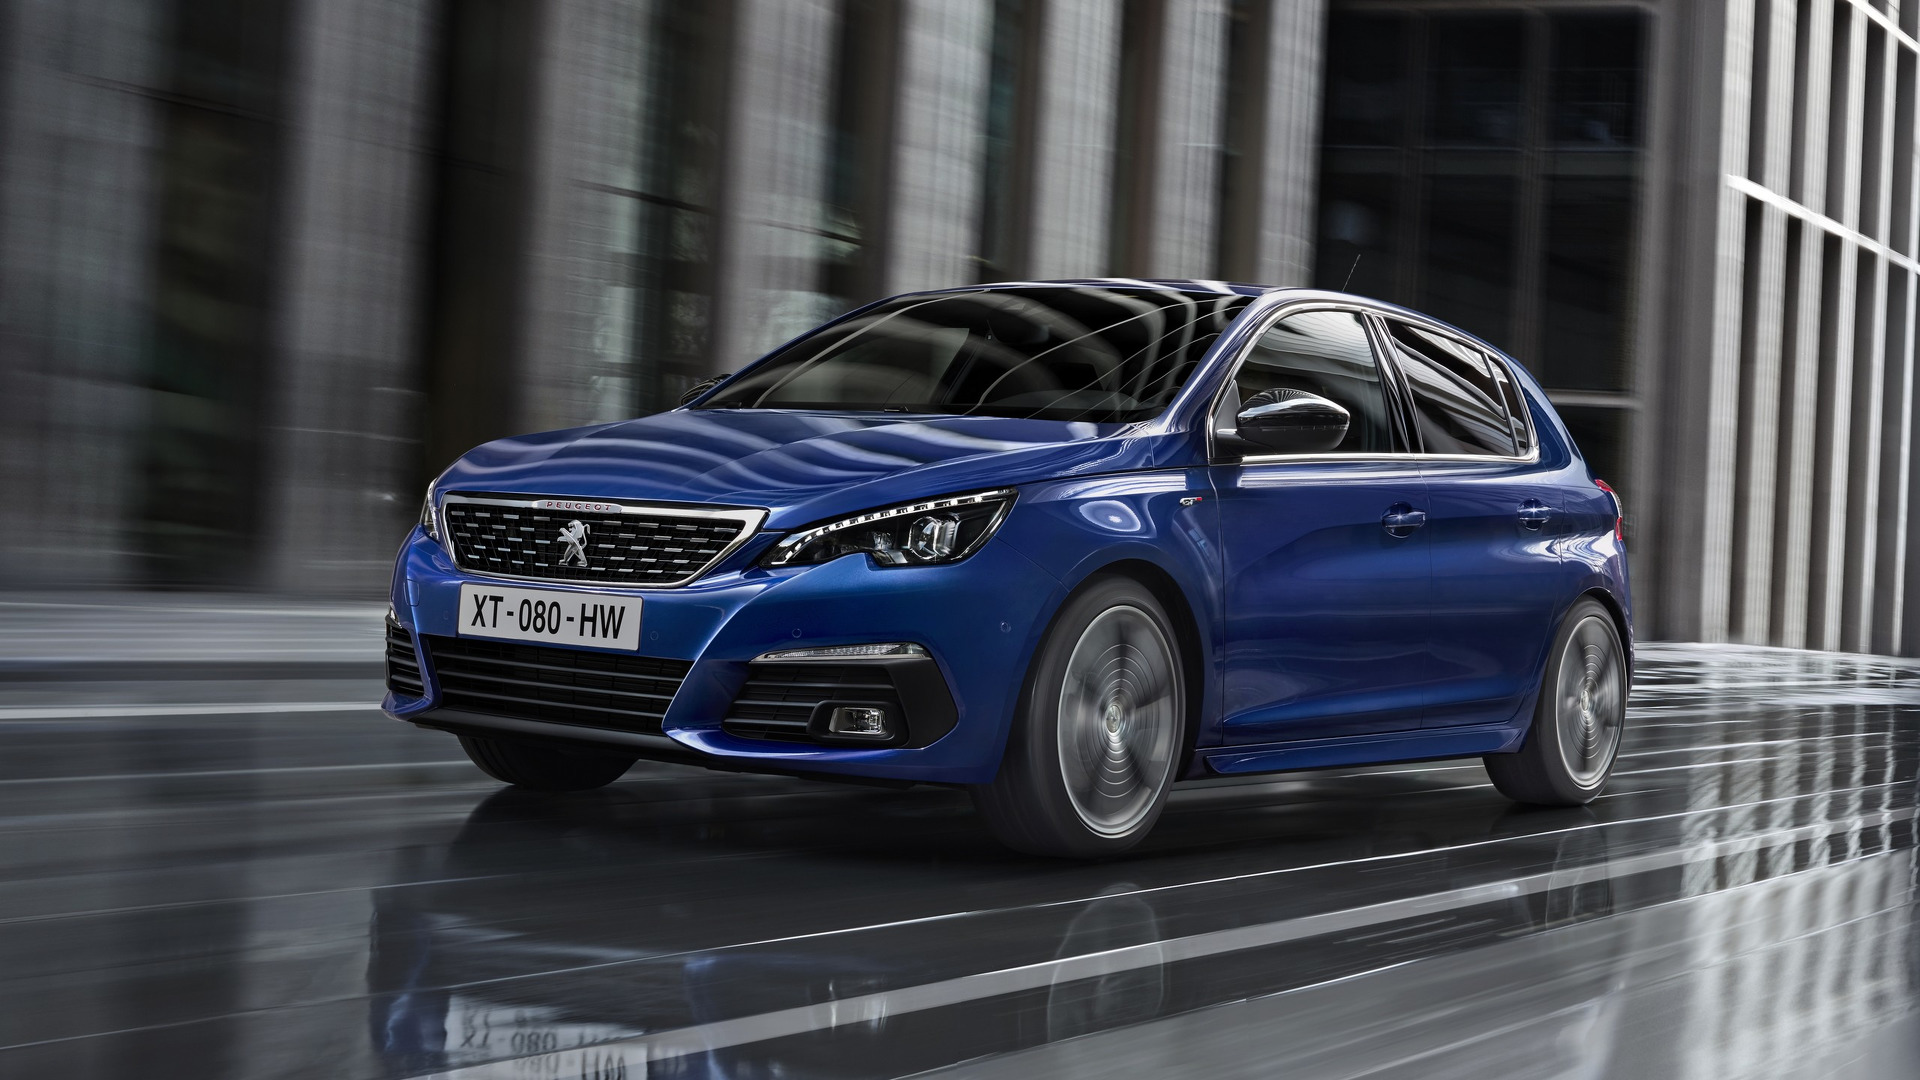 2018 peugeot 308 sw. unique 308 throughout 2018 peugeot 308 sw